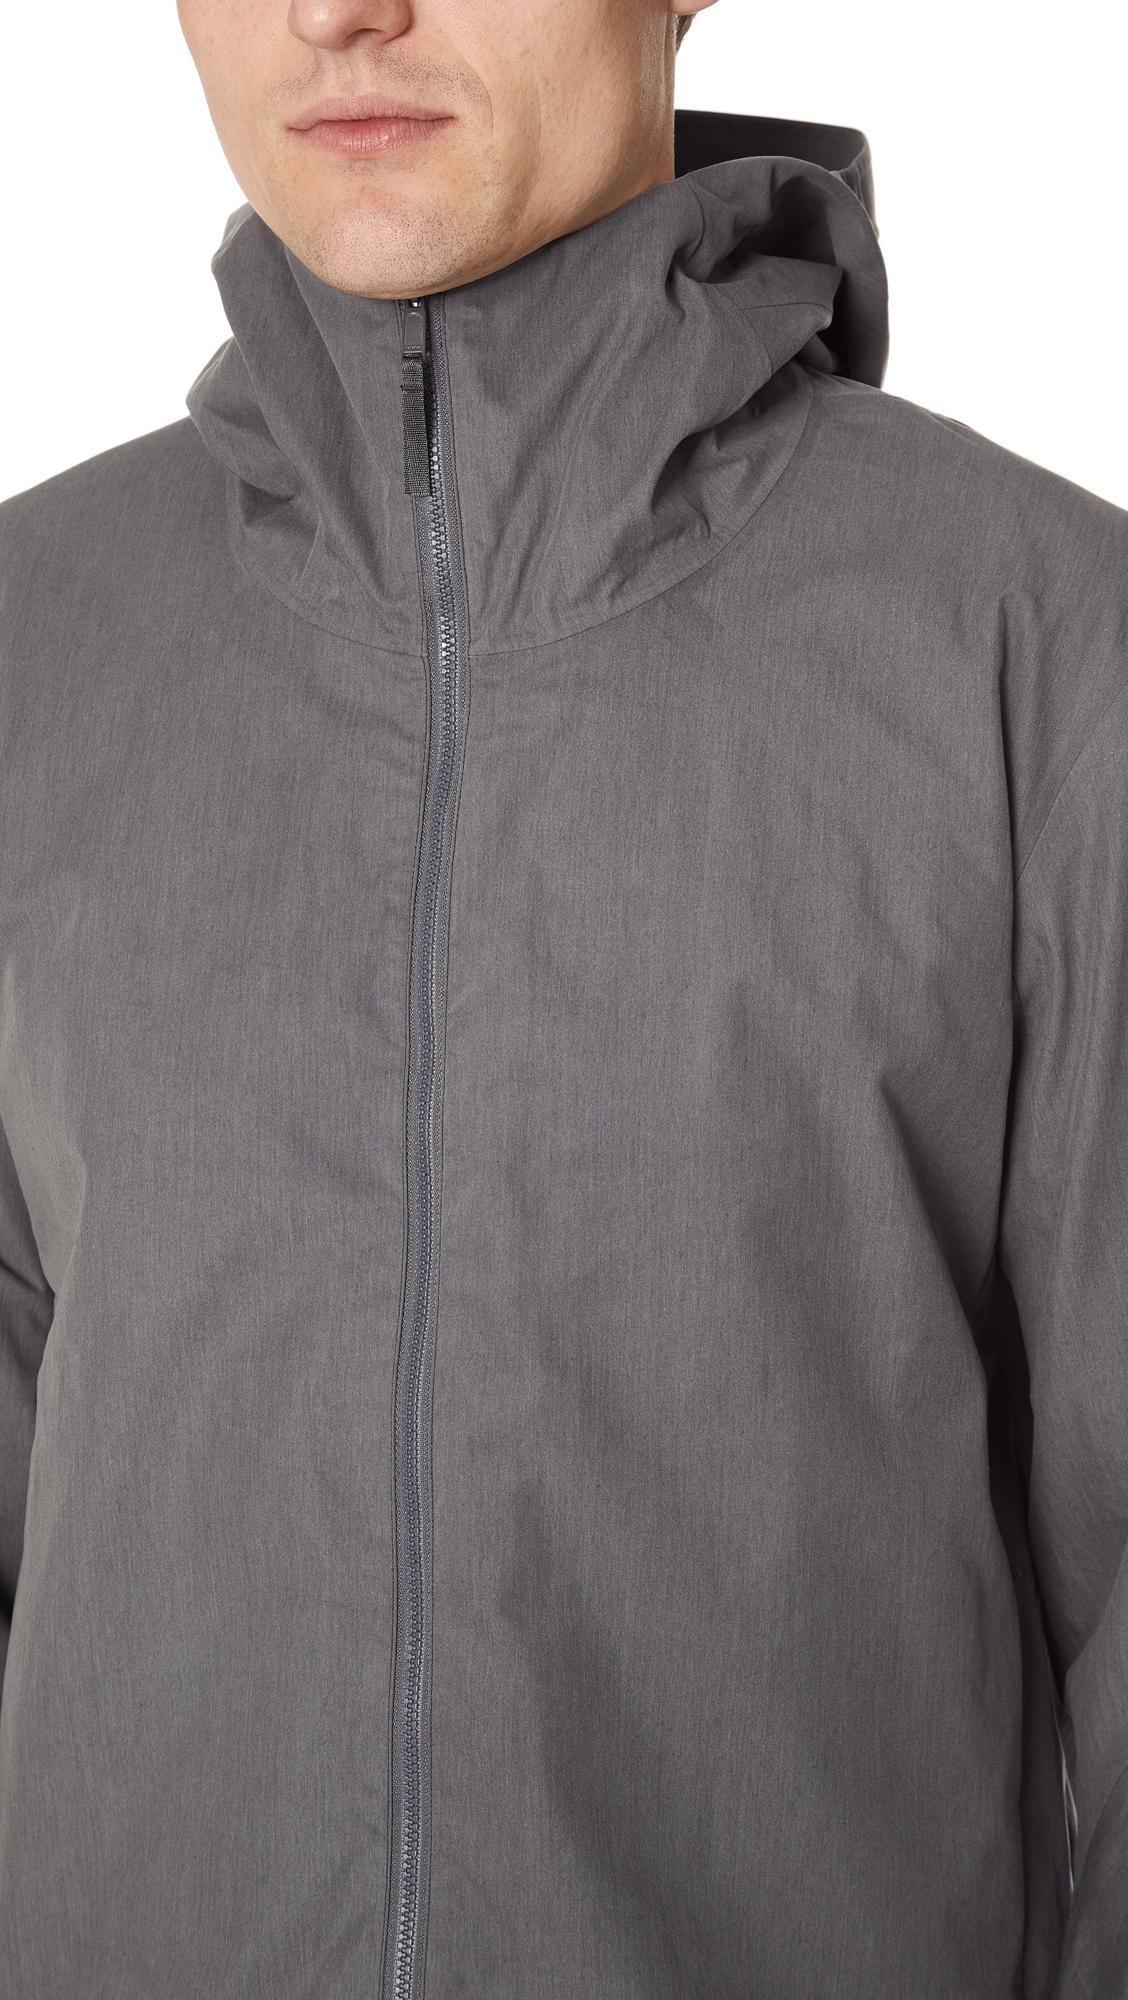 Arc'teryx Cotton Isogon Jacket in Ash (Grey) for Men